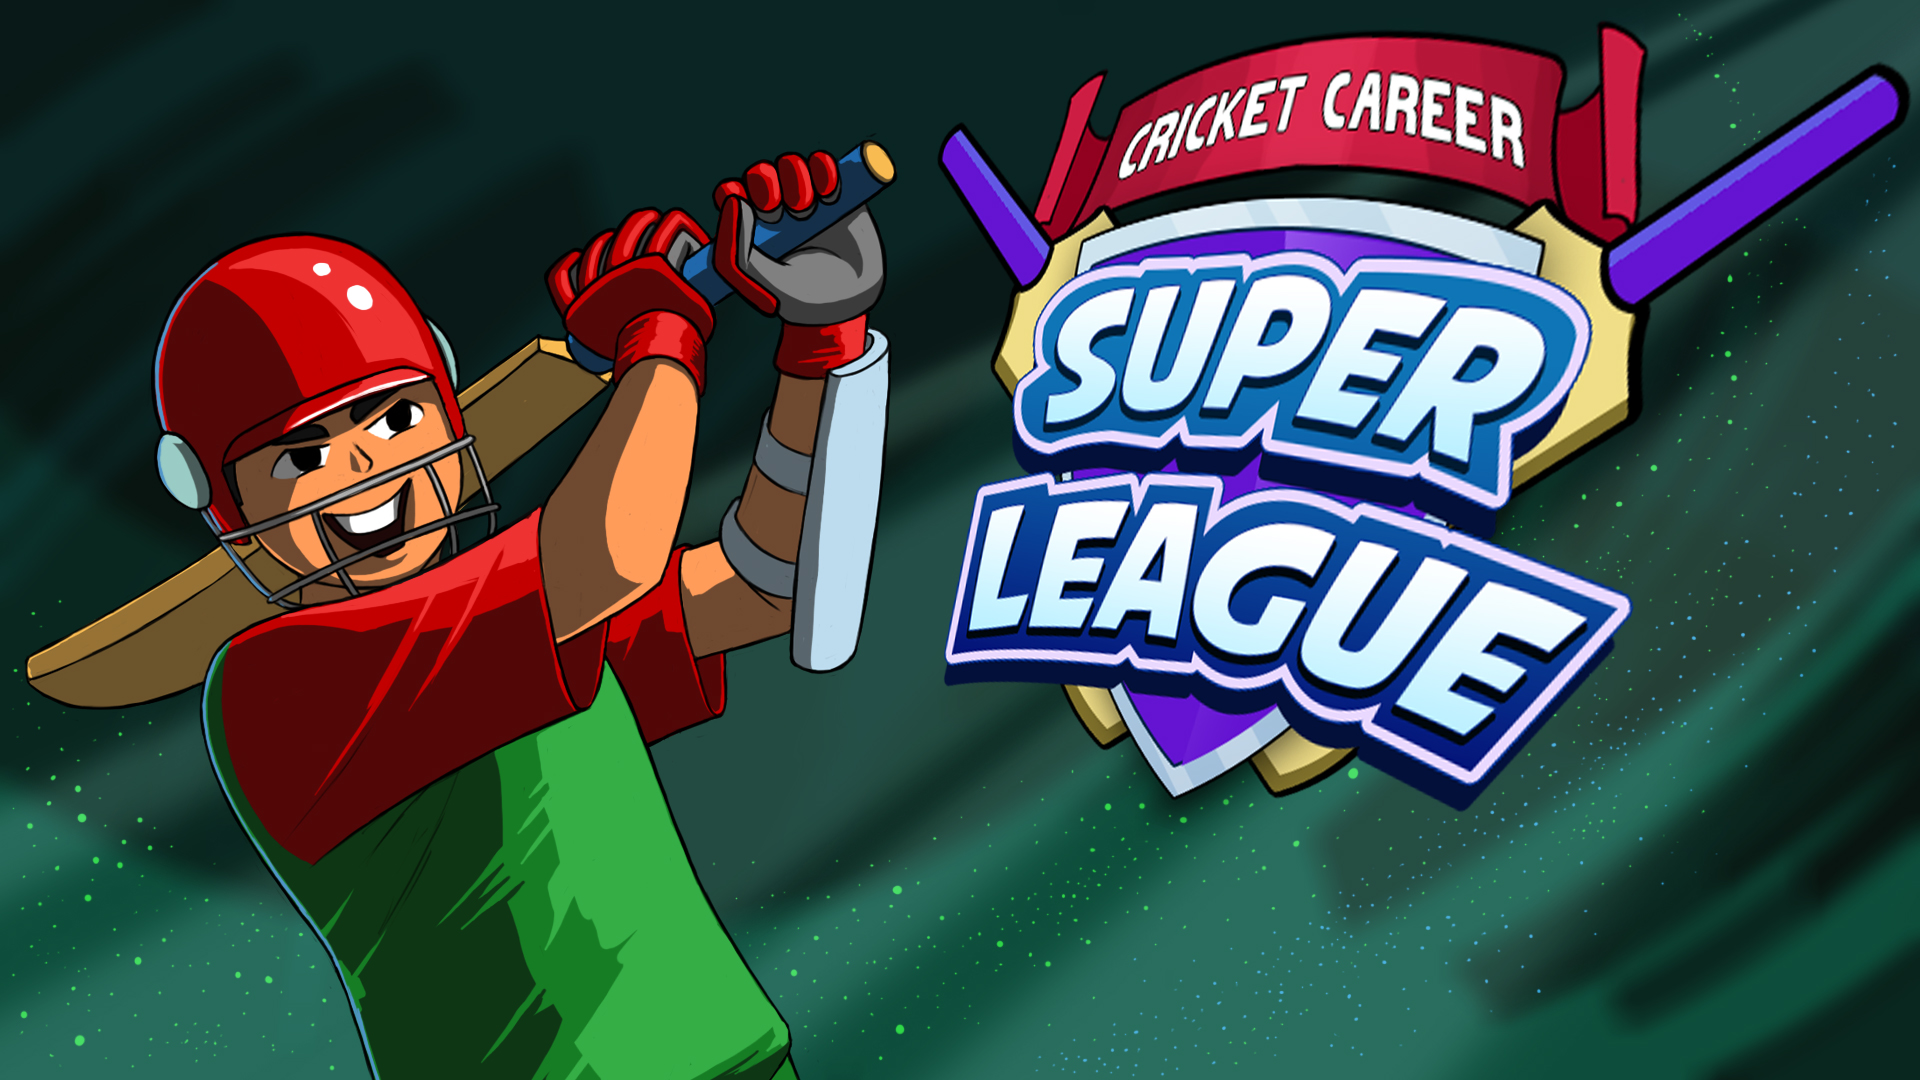 Cricket Career Super League